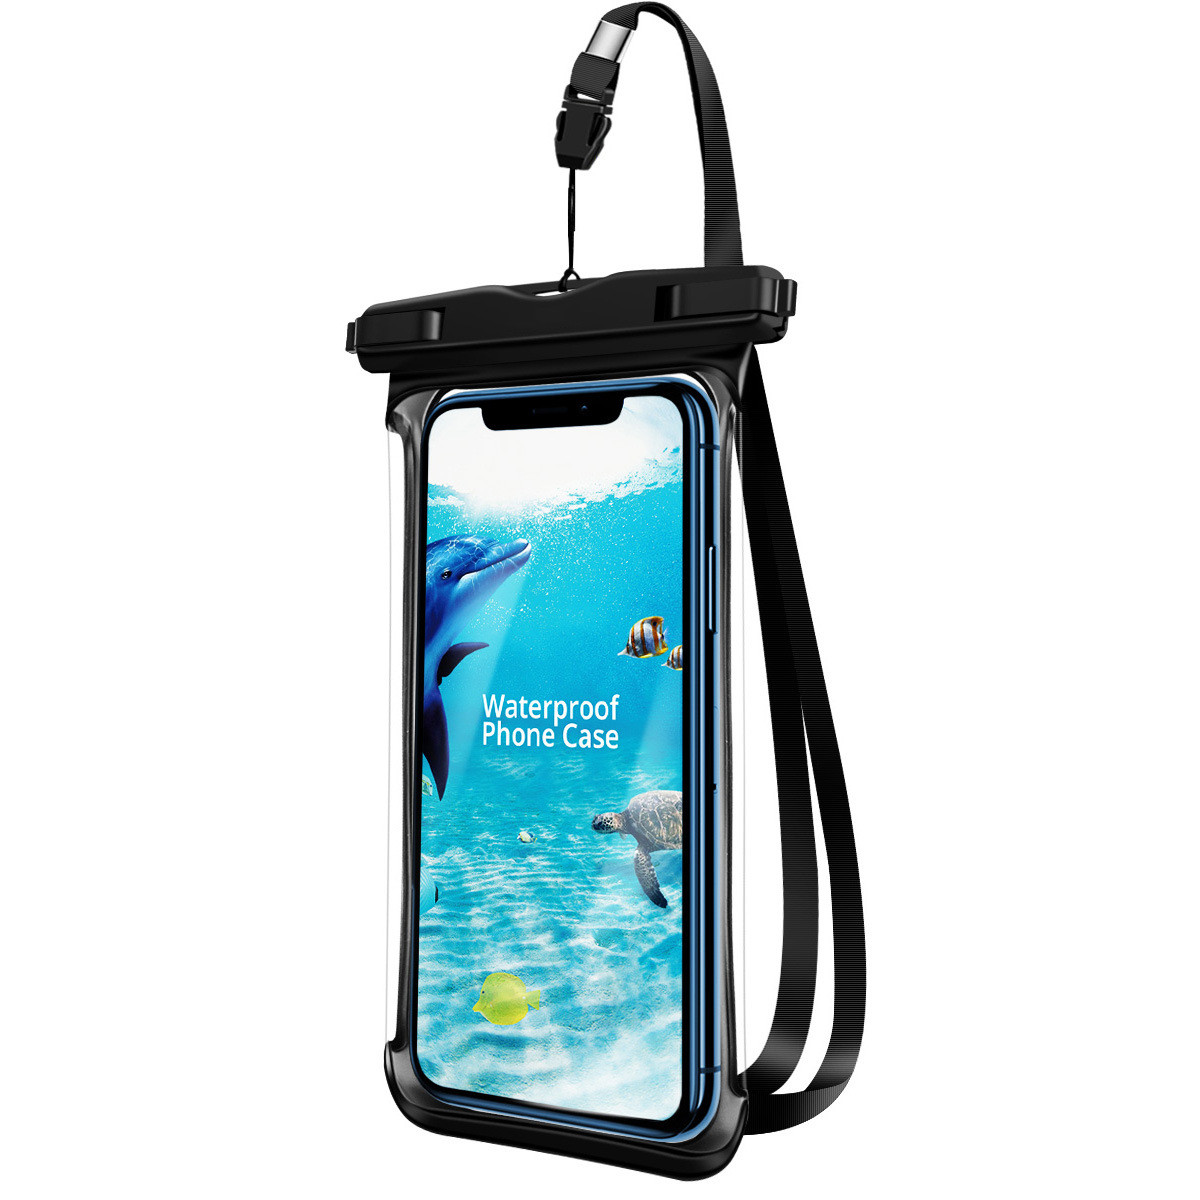 Hec52c213f5664a478786ddb93b2633abx - Full View Waterproof Swimming Pouch Case for Phone Underwater Snow Rainforest Transparent Dry Bag Big Mobile Phone Bag Sealed